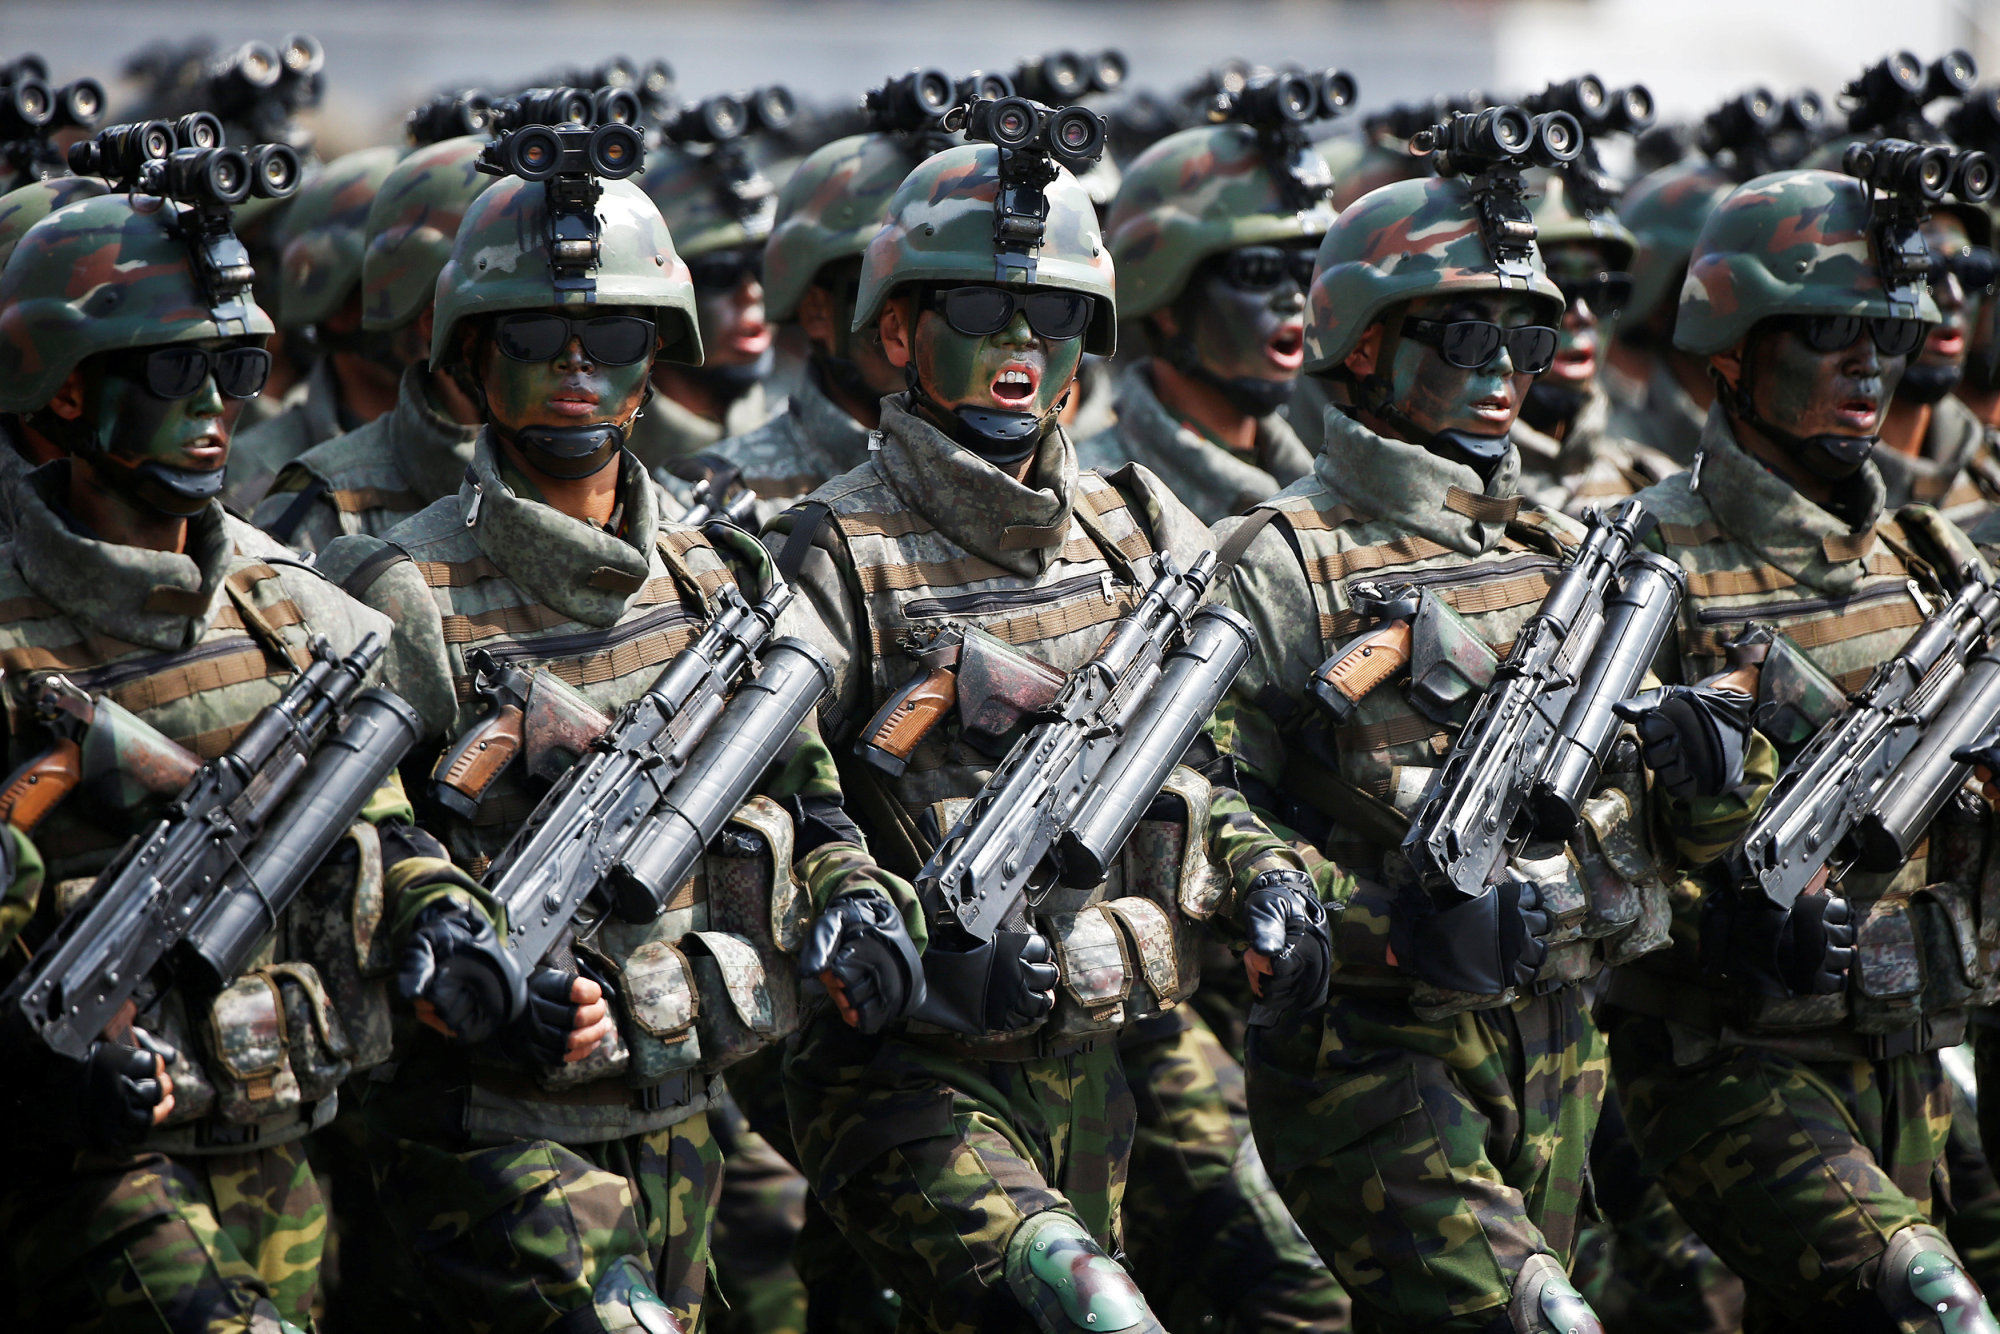 North Korean special forces soldiers march and shout slogans during a military parade marking the 105th anniversary of the birth of the country's founder, Kim Il Sung, in Pyongyang on April 15. | REUTERS